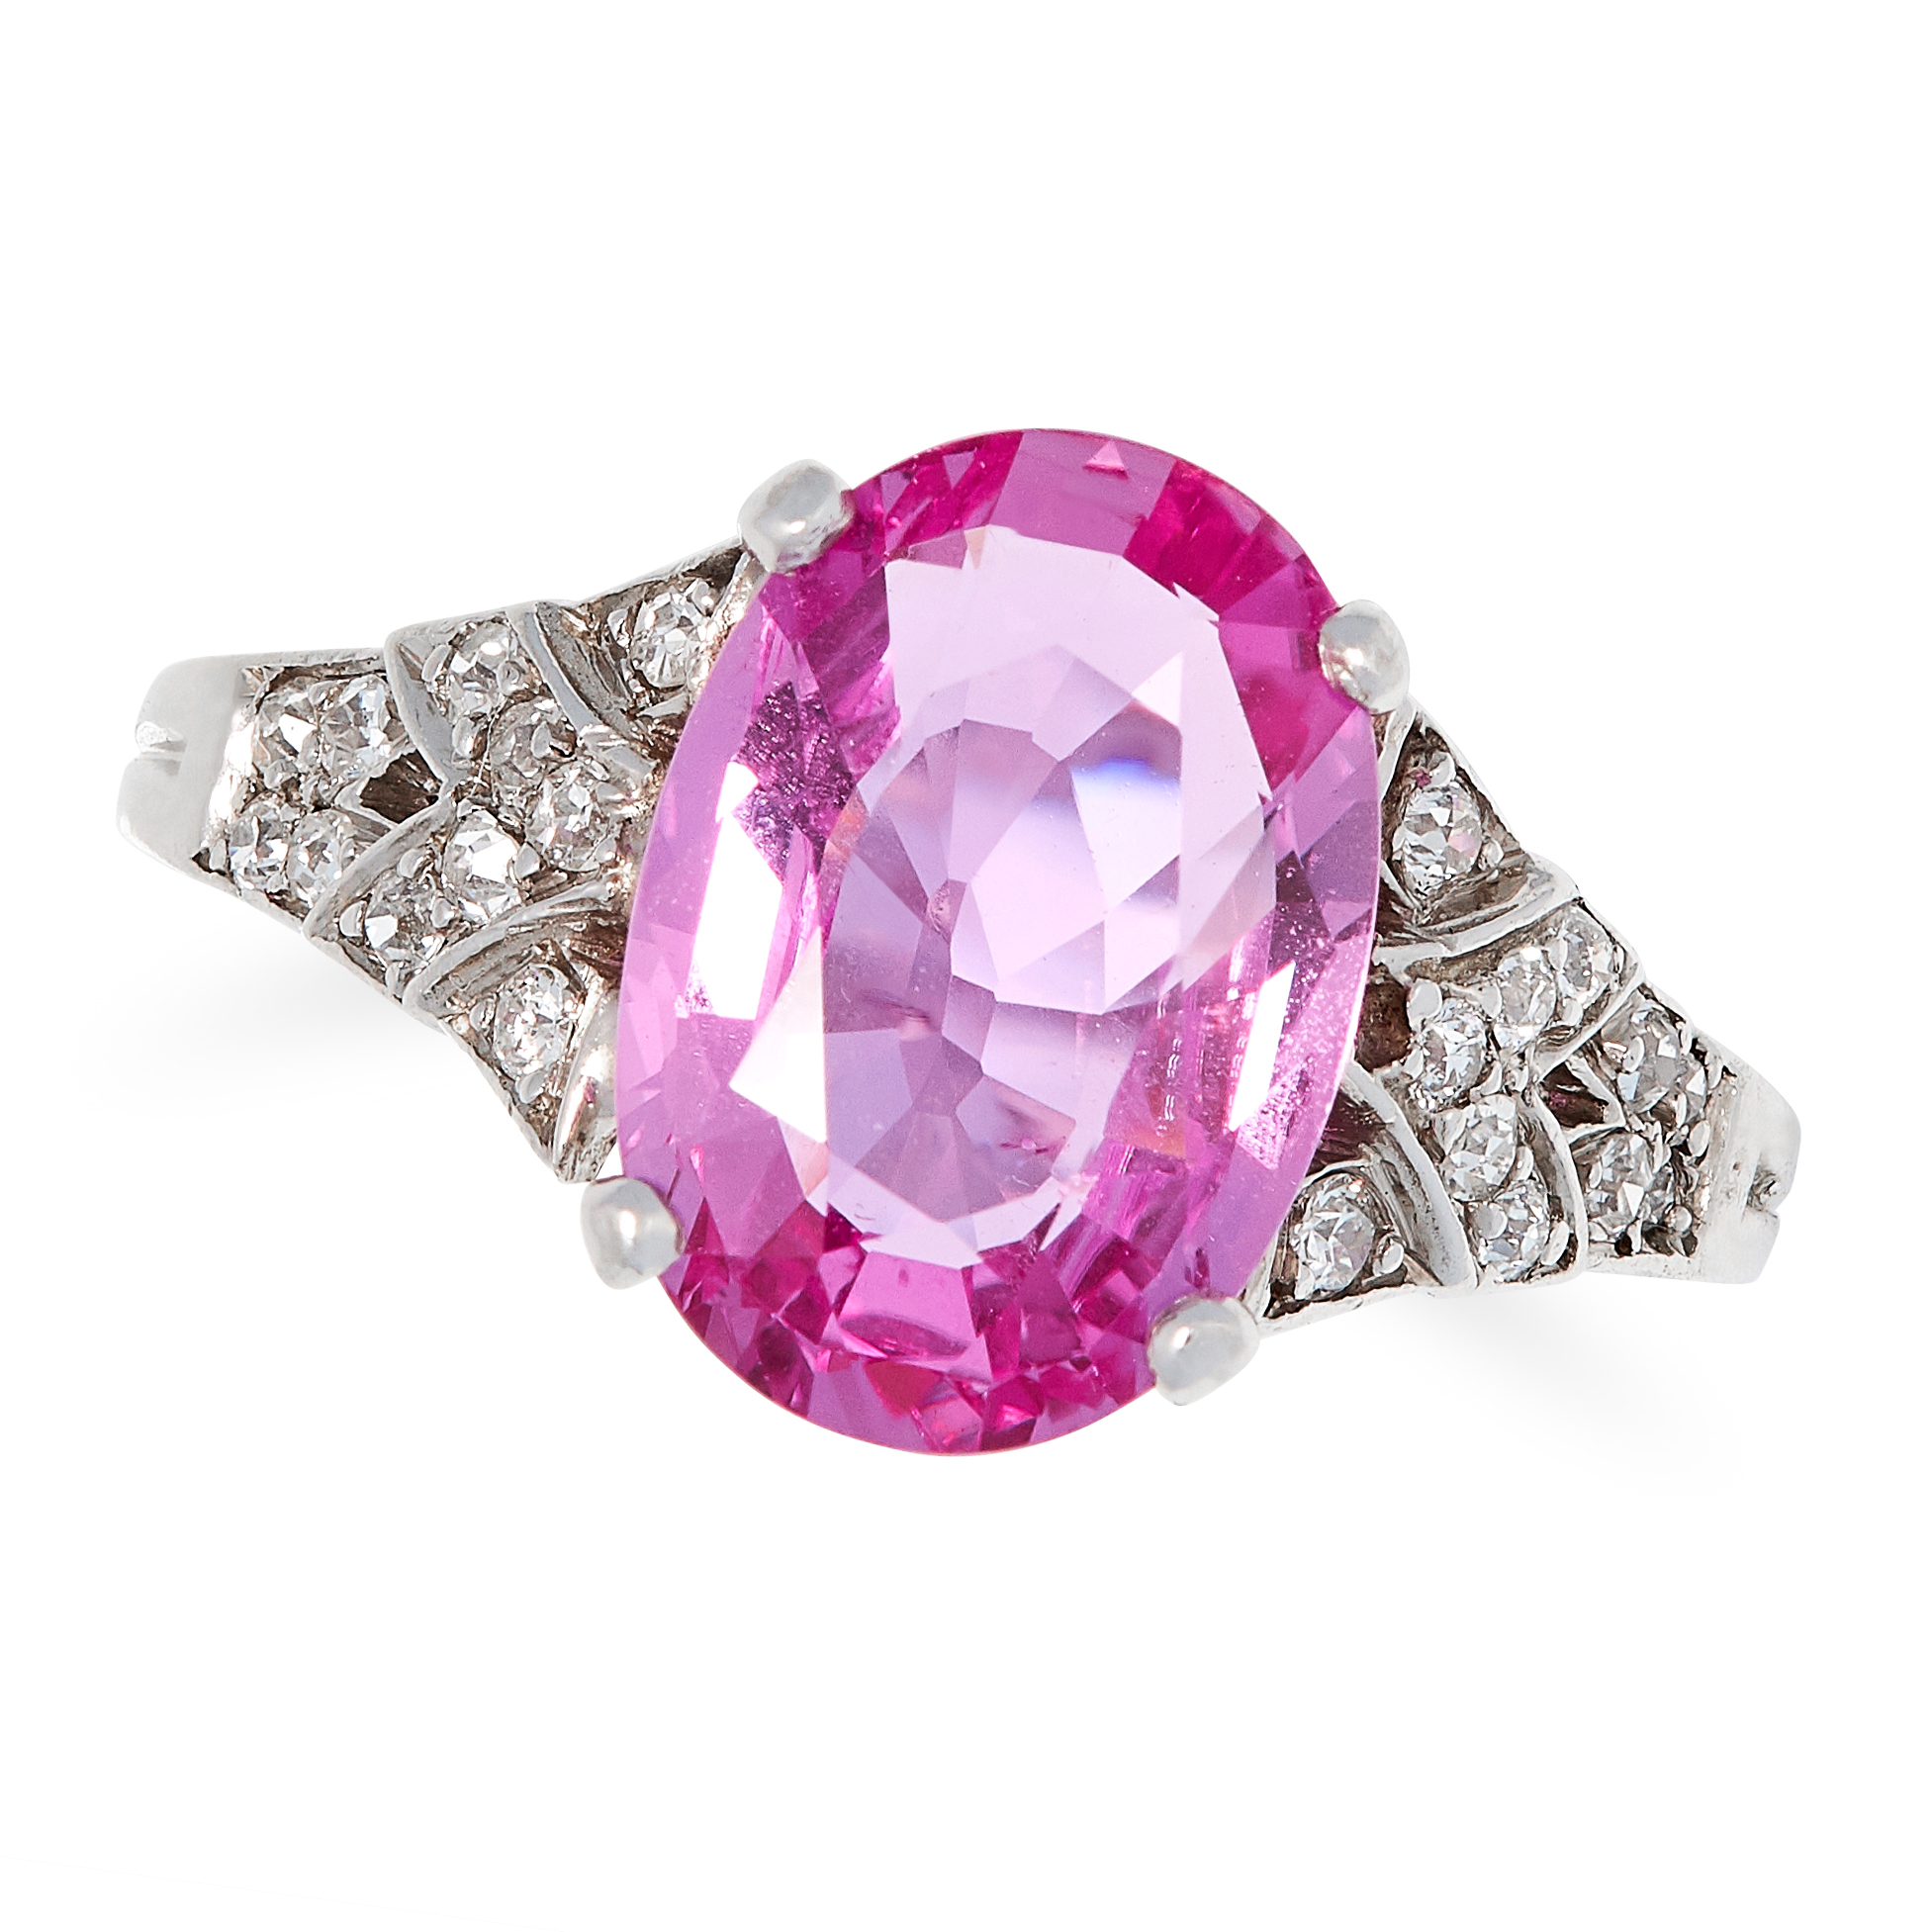 Los 7 - AN UNHEATED 3.76 CARAT PINK SAPPHIRE AND DIAMOND RING set with an oval cut pink sapphire of 3.76